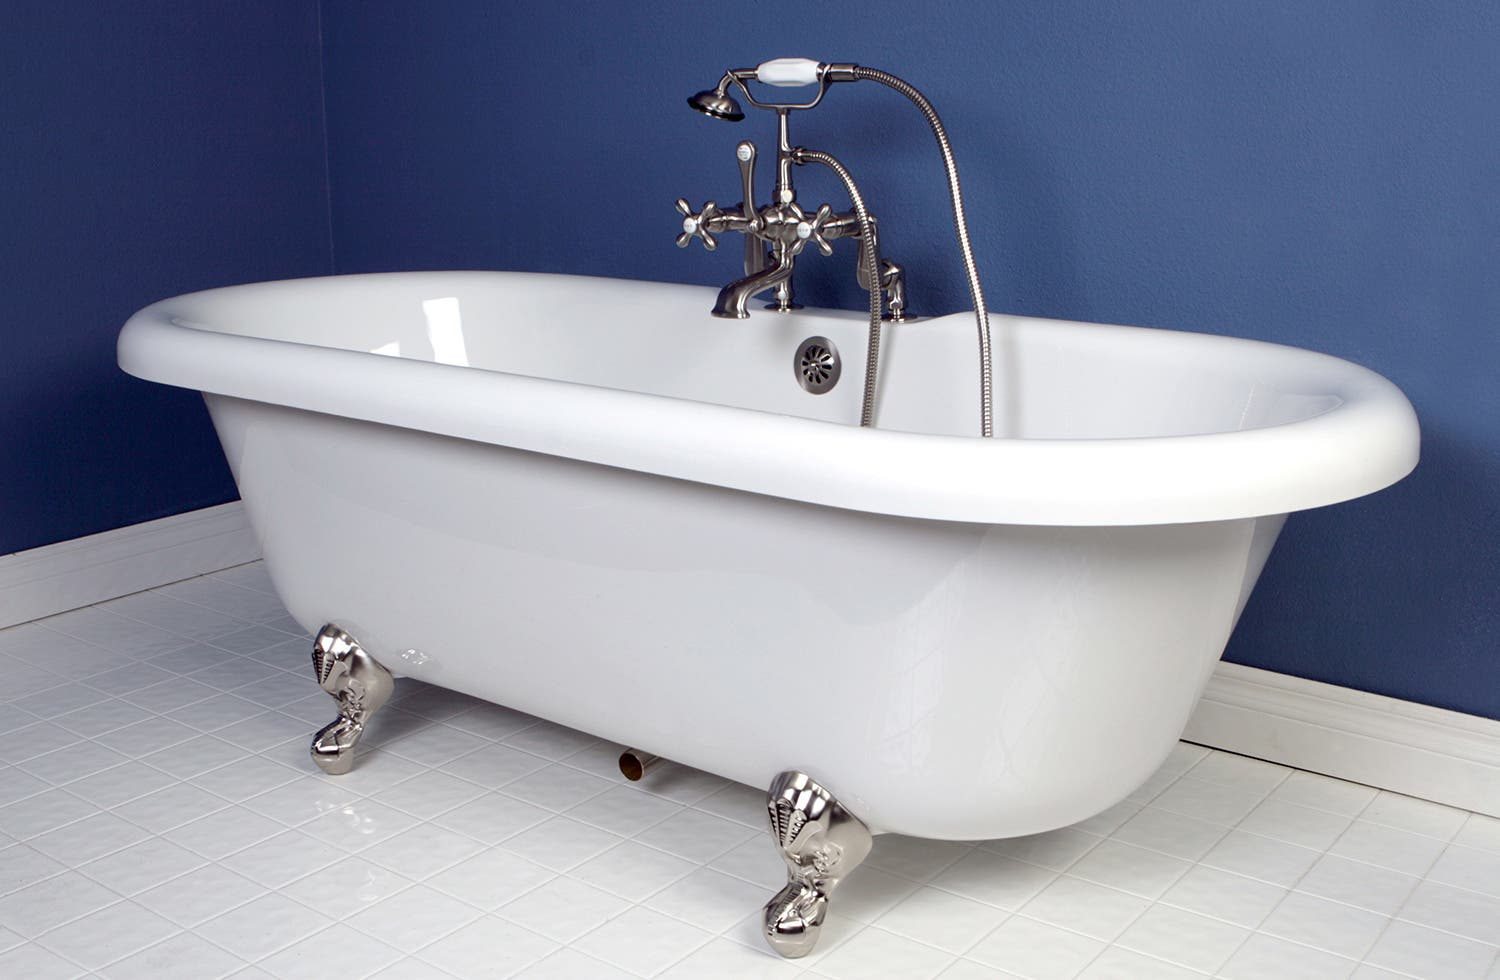 Easy bathroom repairs to do yourself | Kingston Brass